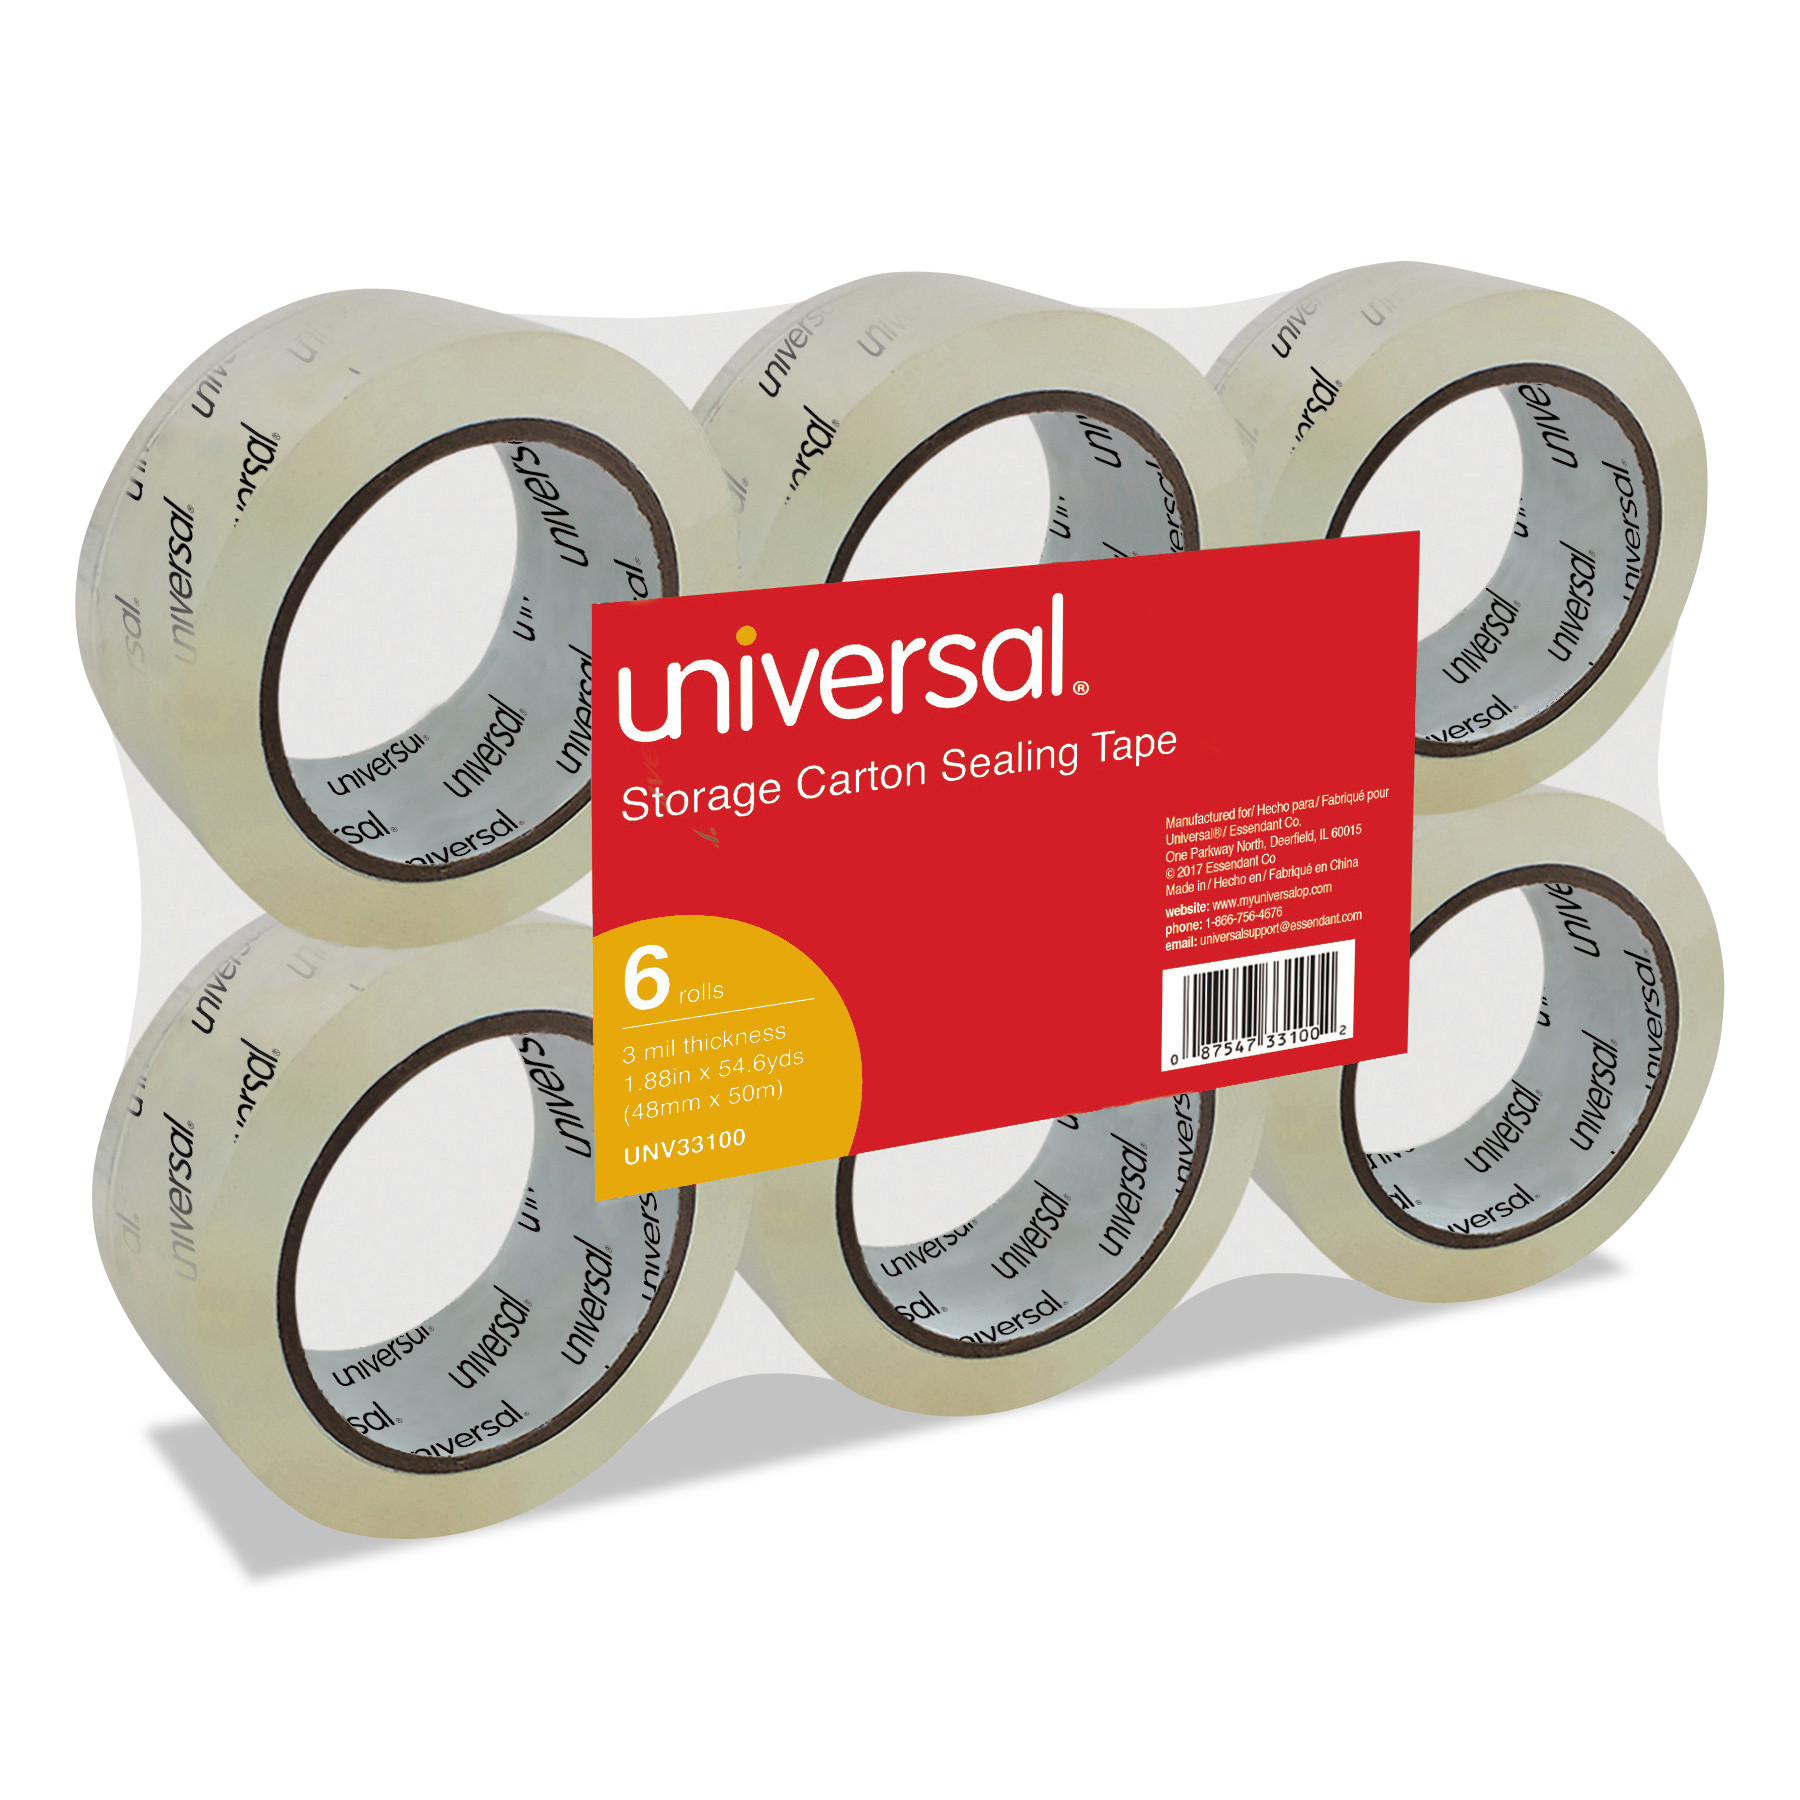 "Universal Heavy-Duty Acrylic Box Sealing Tape, 48mm x 50m, 3"" Core, Clear, 6/Pack -UNV33100"